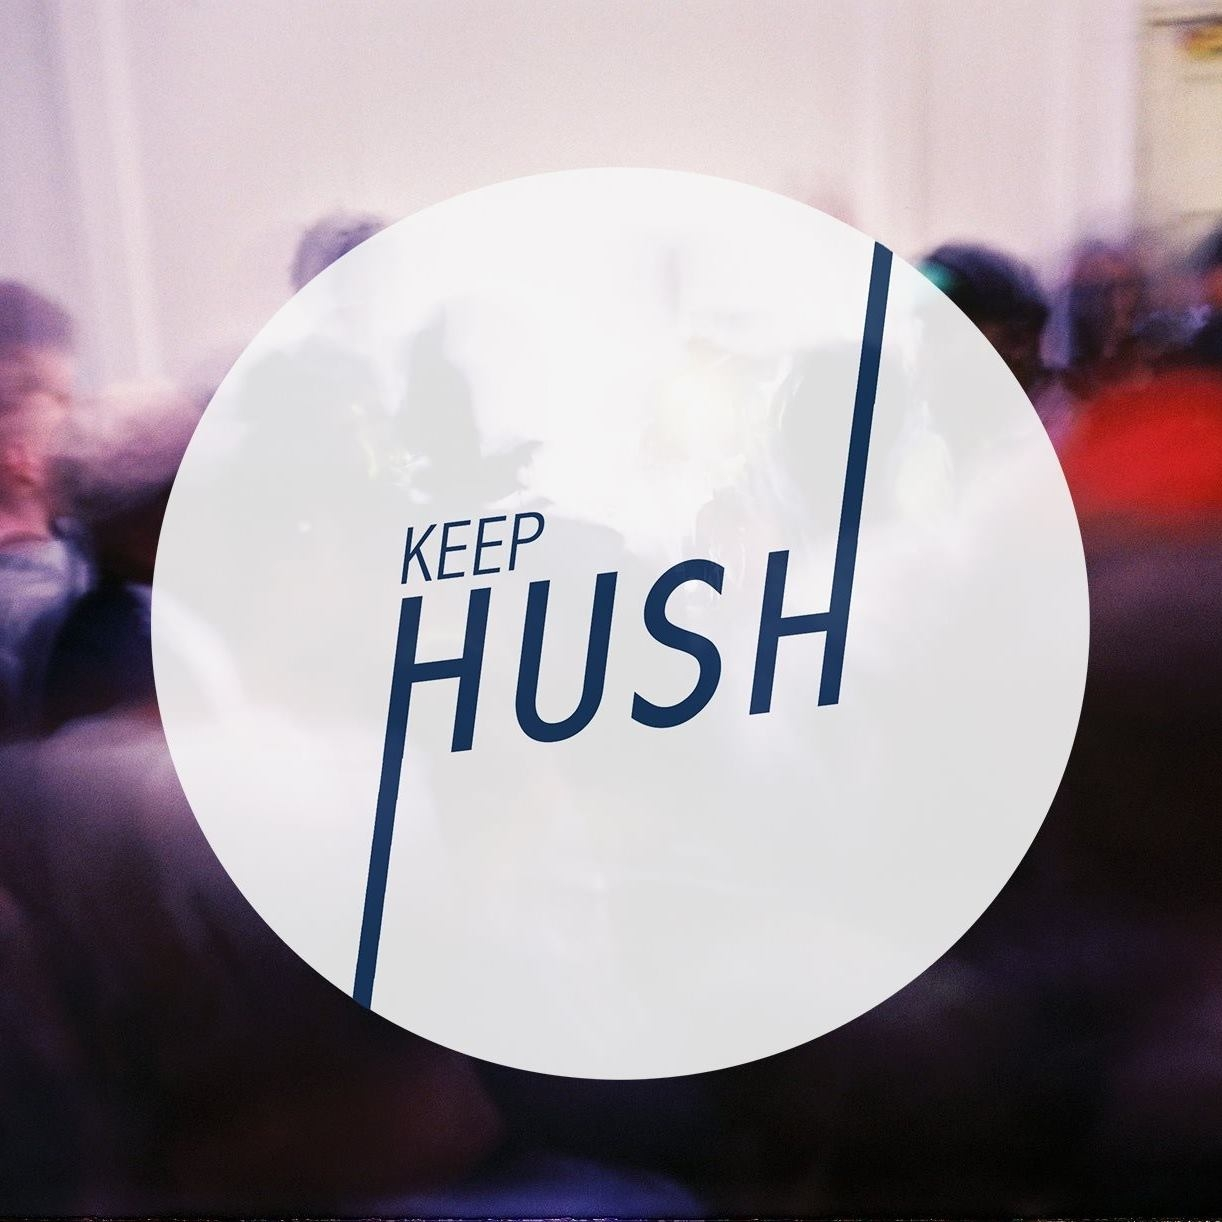 Keep Hush   Freddy & Fred continue to push boundaries and redefine club culture as we know it as KEEP HUSH. Live streams, meet ups, a soundsystem, and a true music community. Nuff respect for what the boys are up to, and hold tight for the eventual collab...   Facebook